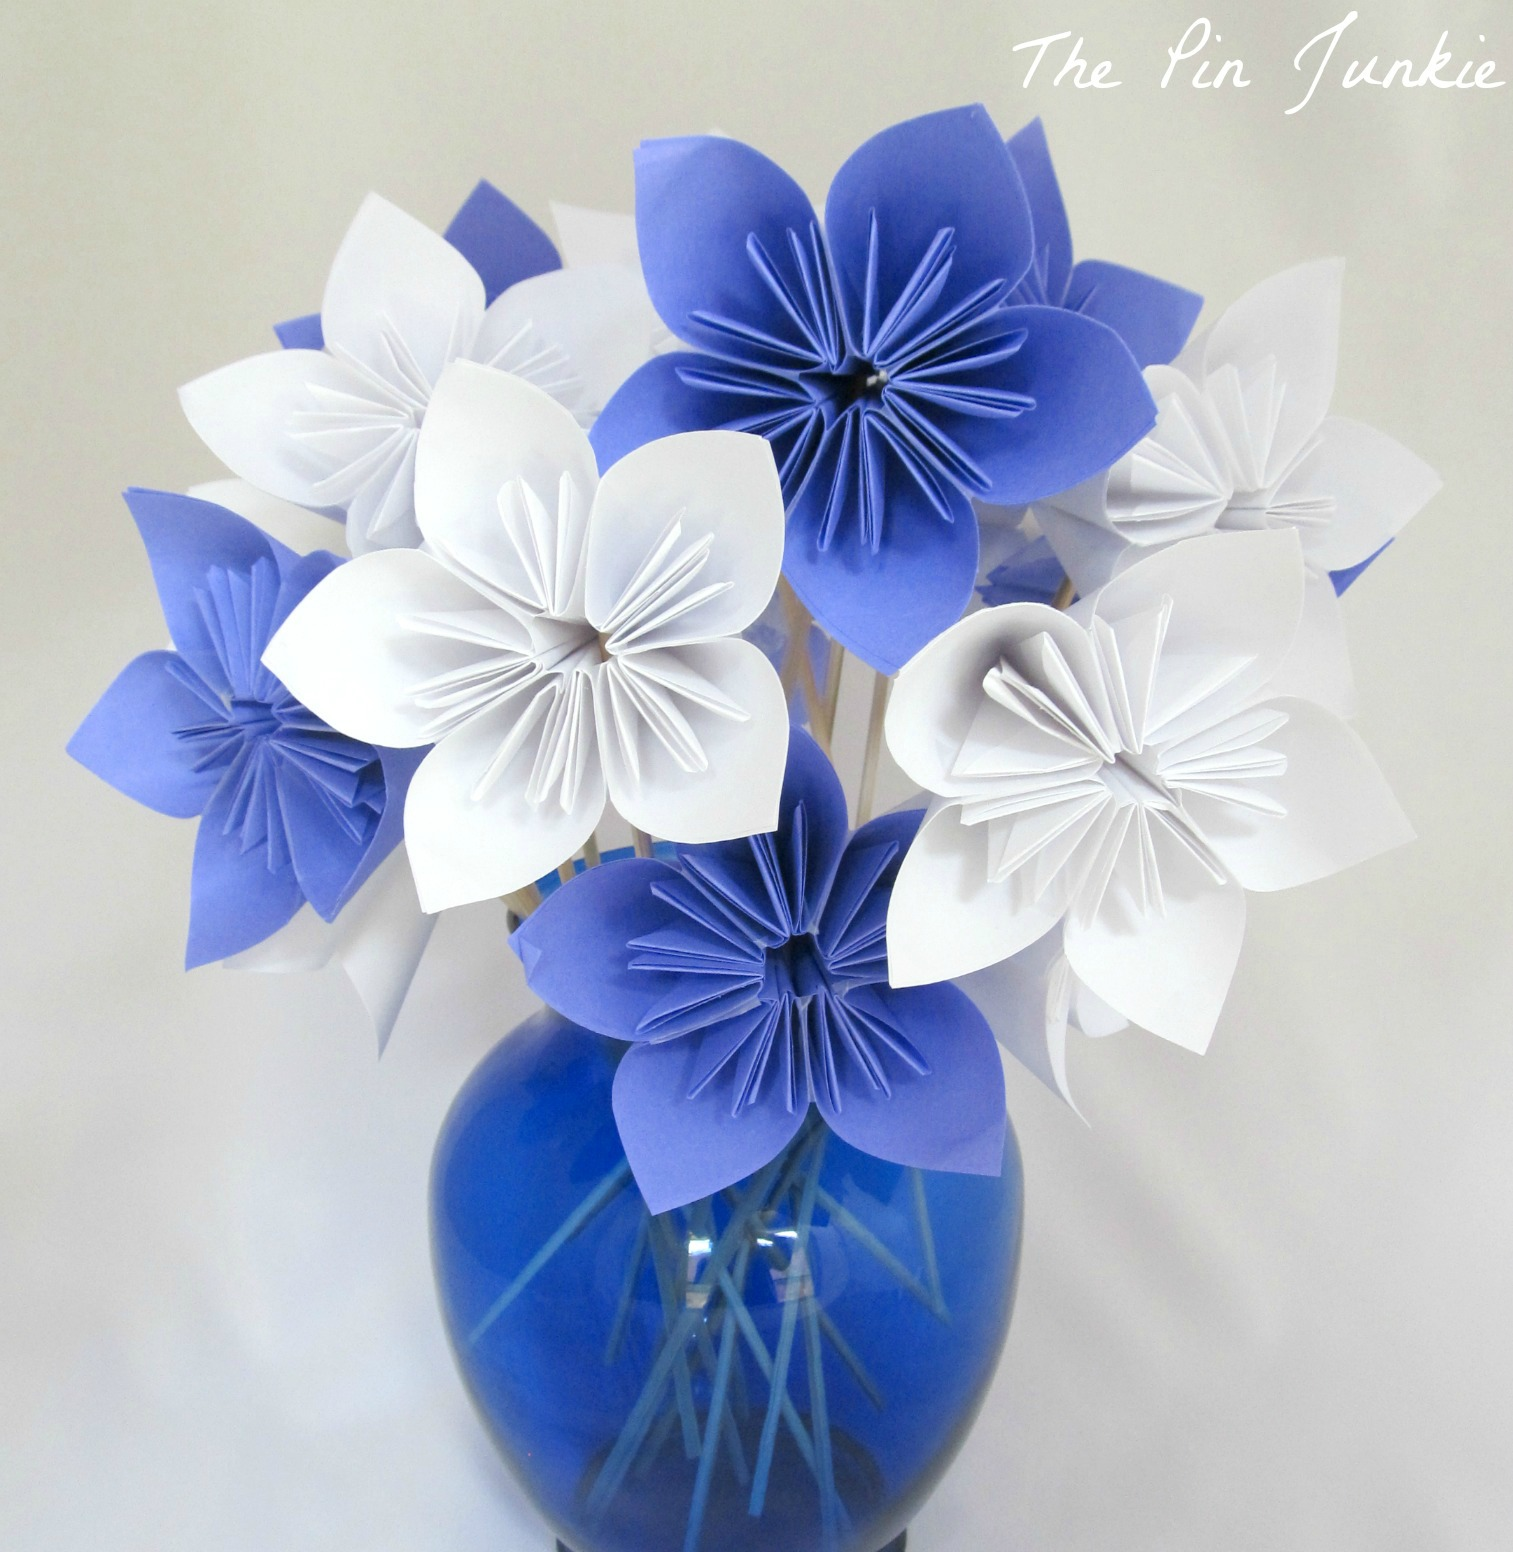 Paper Origami Flowers {The Pin Junkie} - photo#7